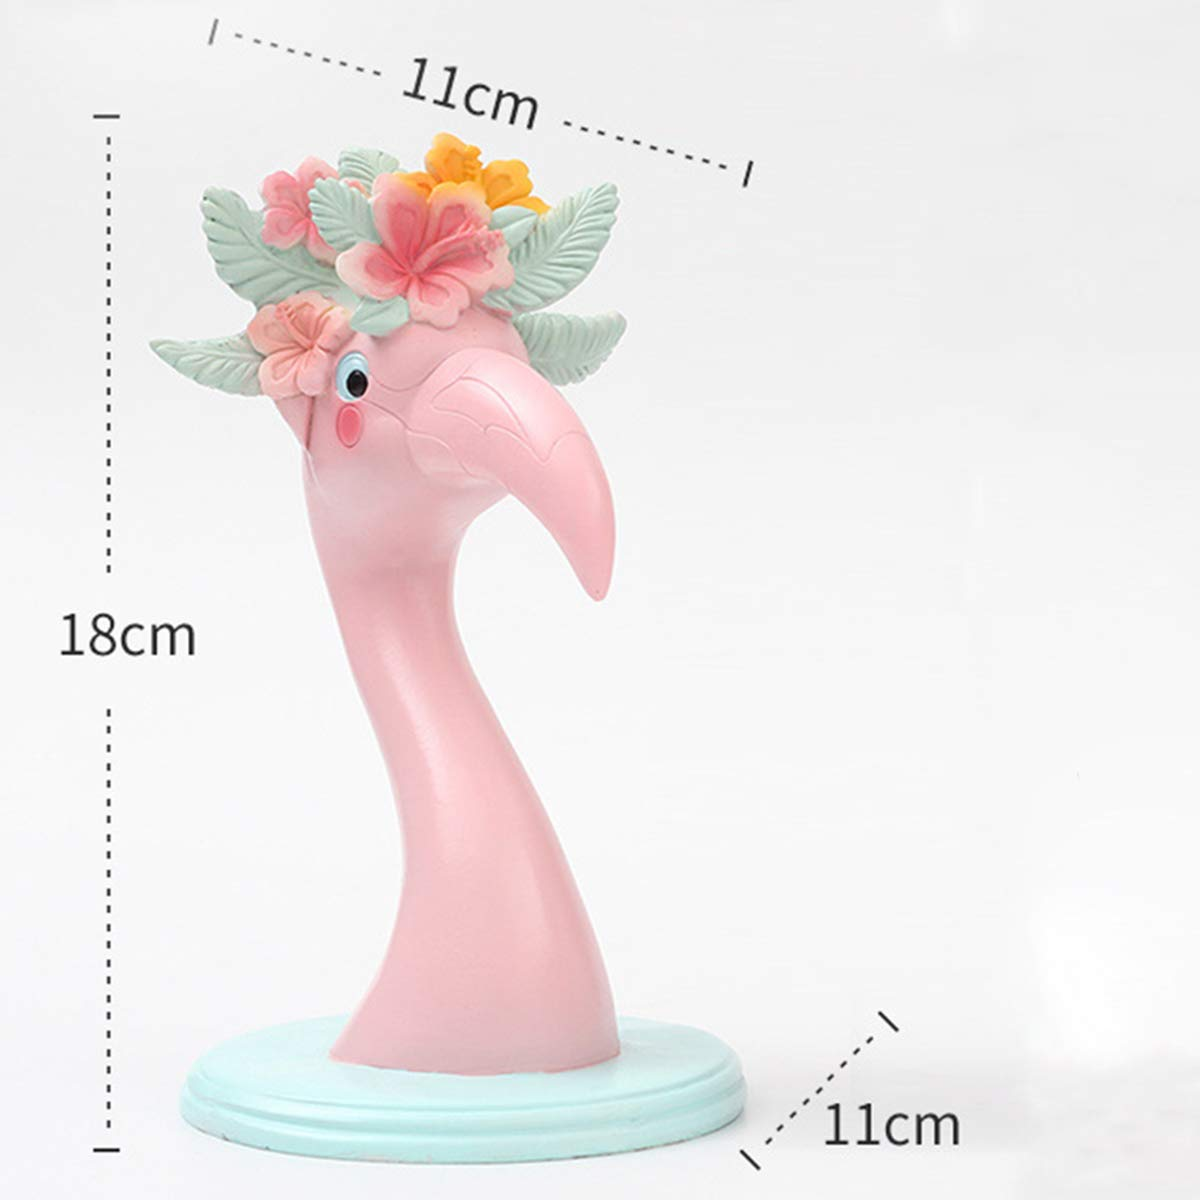 YeahiBaby Pink Flamingo Ornaments Eyeglass Display Holder Glasses Display Shelves Love Bird Flamingo Figurine Statues Home Office Desktop Decoration by YeahiBaby (Image #3)